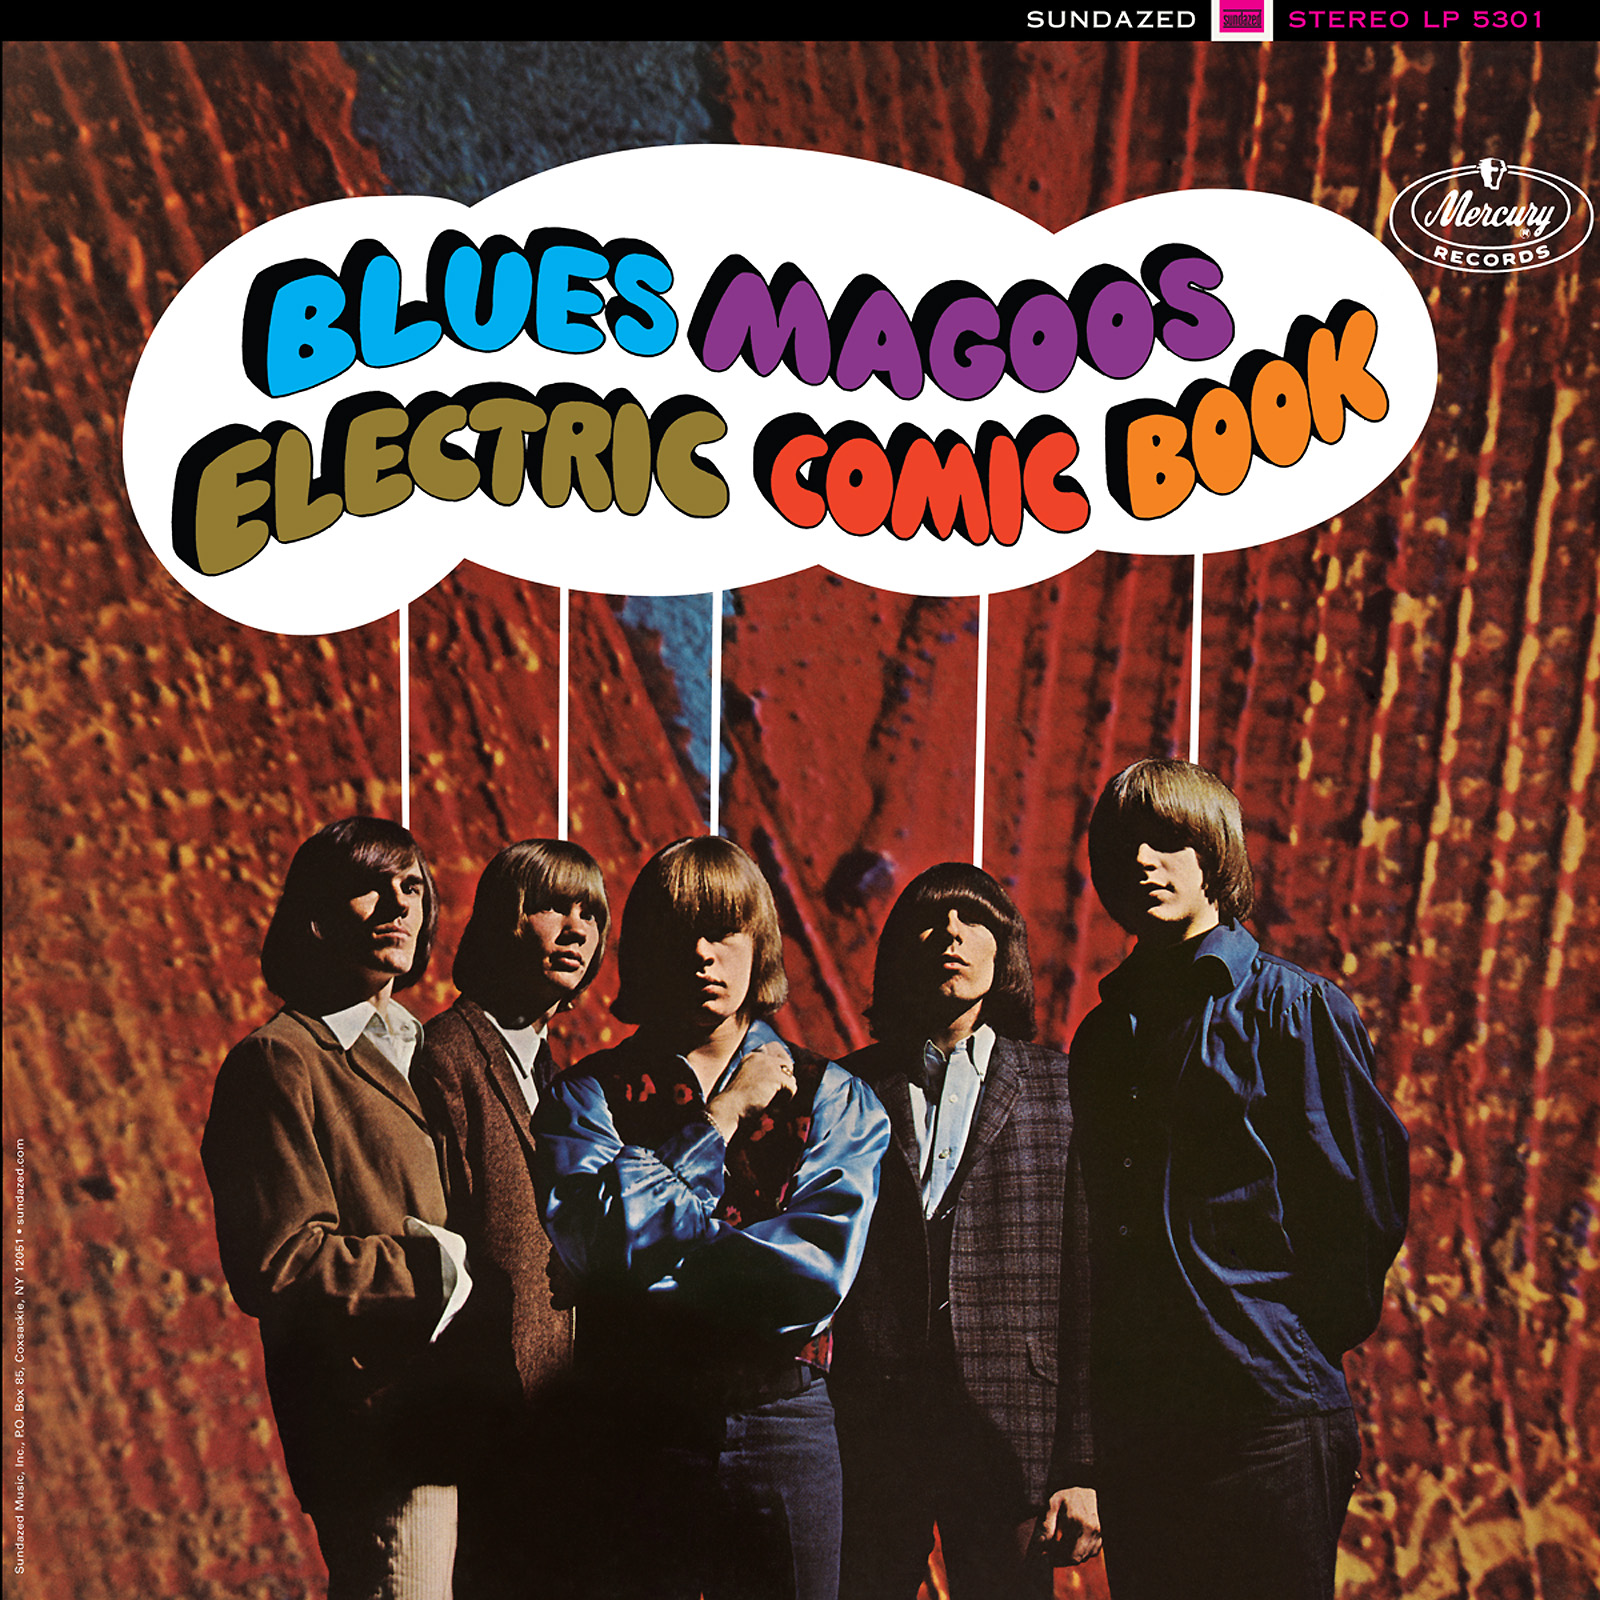 Blues Magoos - Electric Comic Book LIMITED EDITION CD